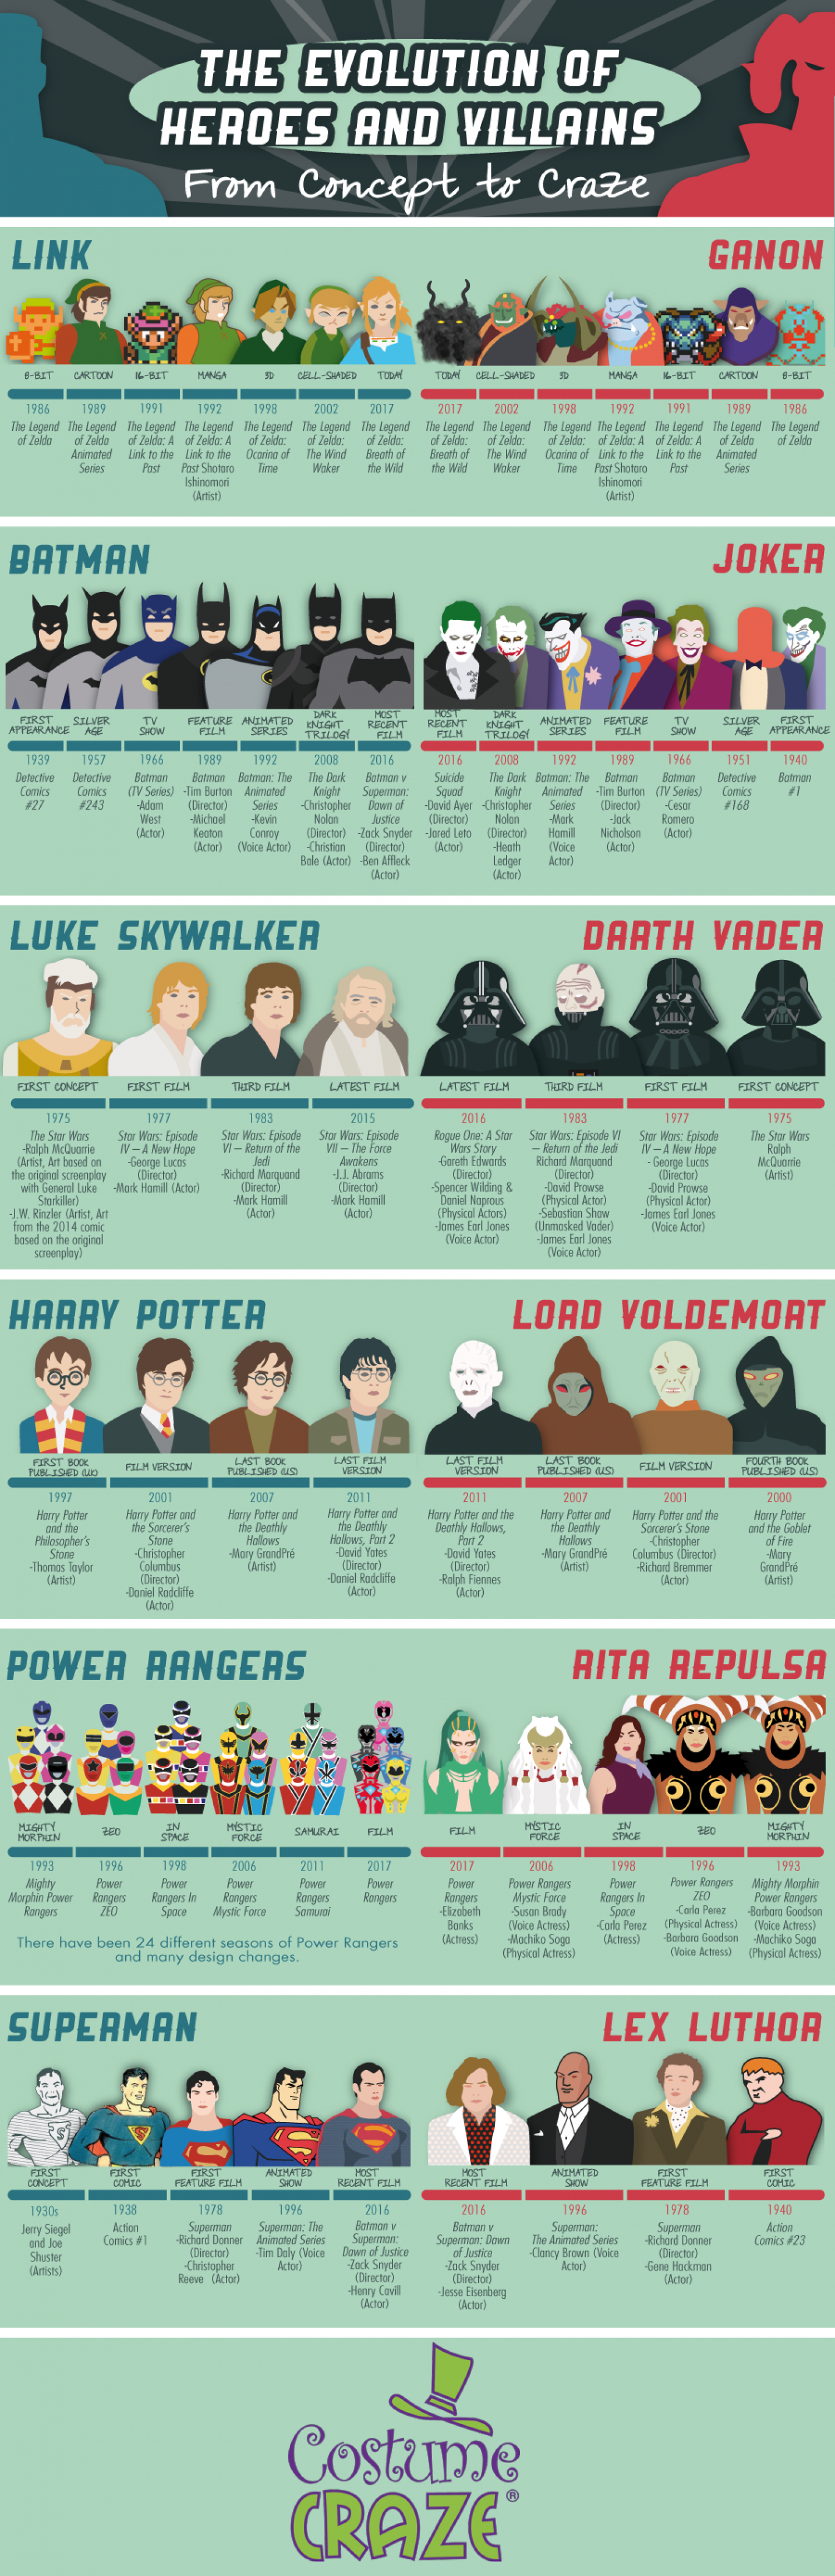 The Evolution of Heroes and Villains Infographic